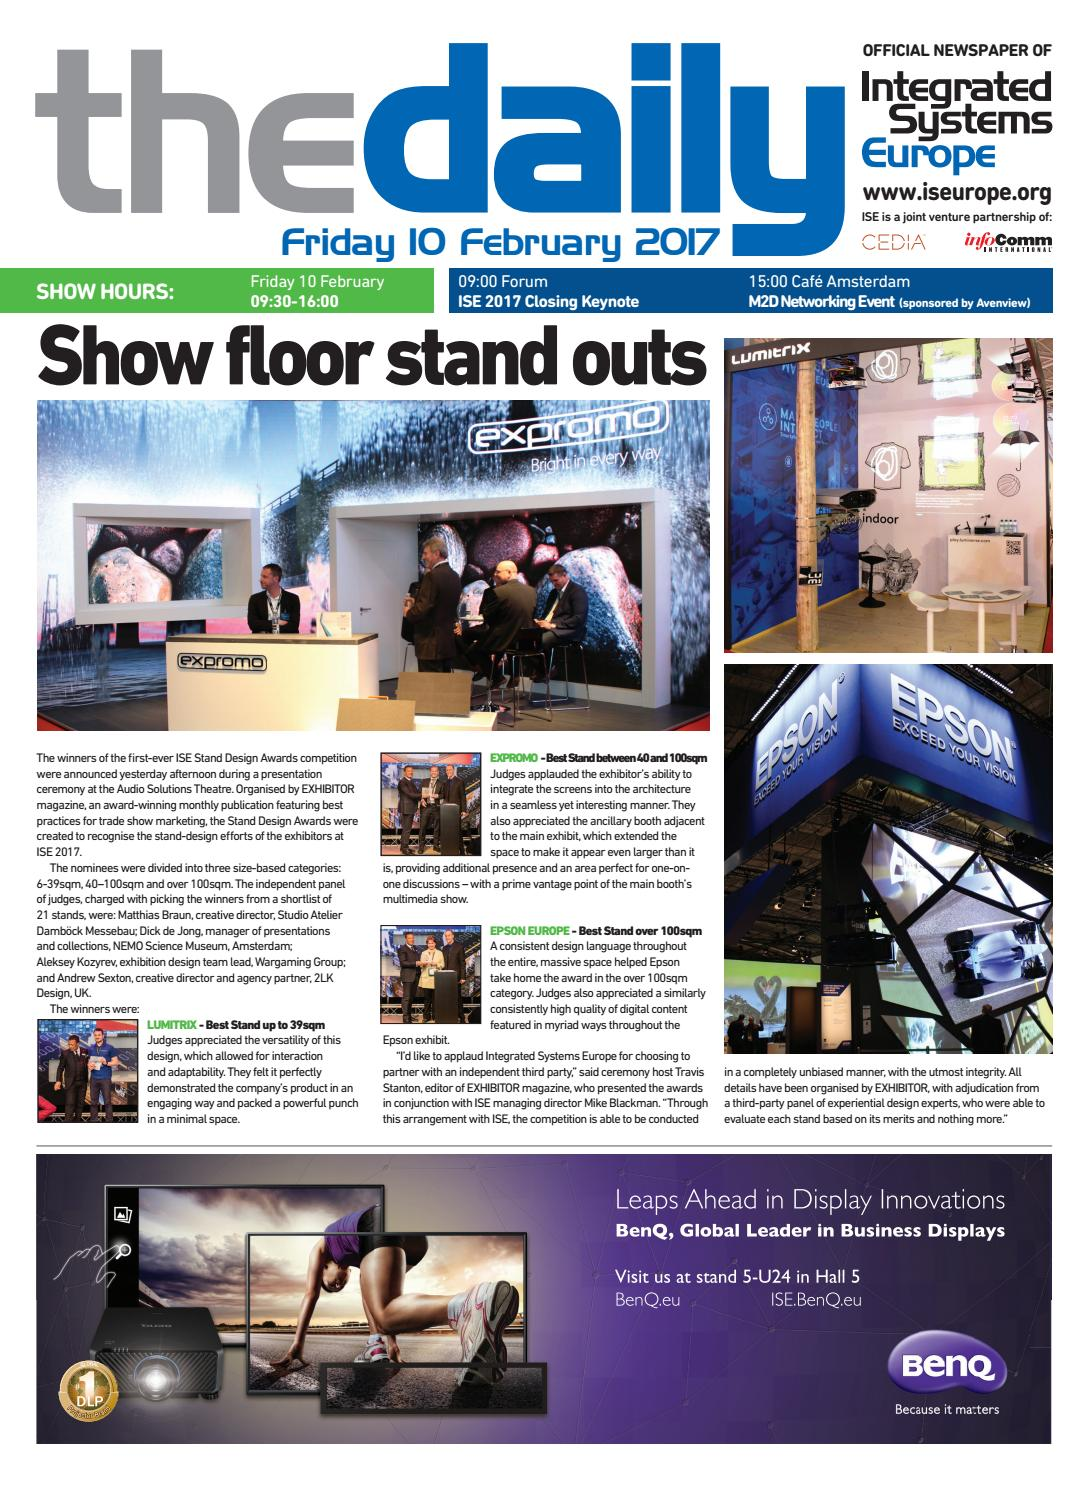 Av asia pacific magazine the new samsung smart signage platform av - Av Asia Pacific Magazine The New Samsung Smart Signage Platform Av 24